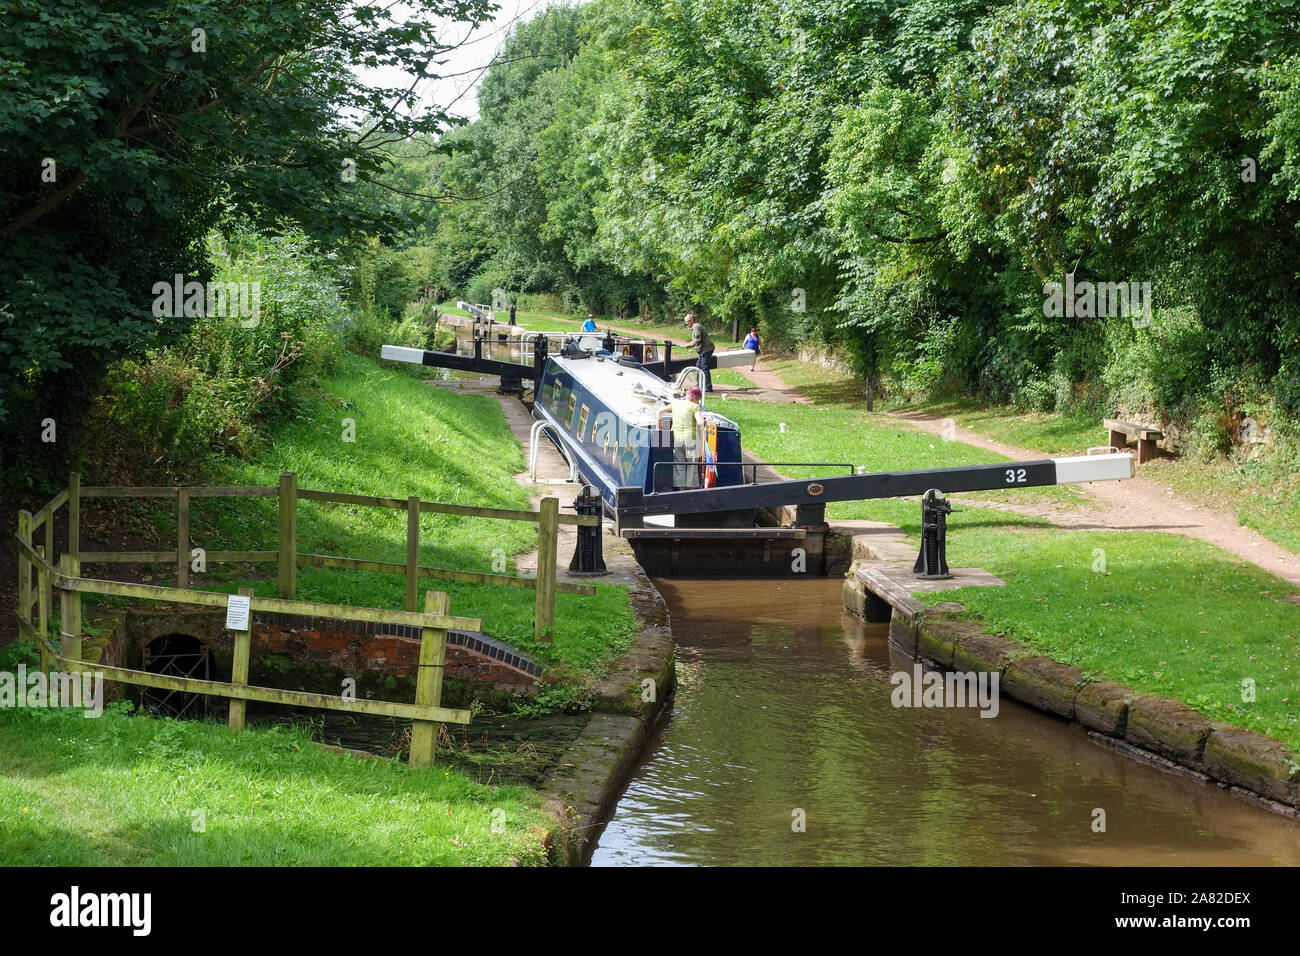 a-canal-boat-or-barge-passing-through-meaford-house-lock-on-the-trent-and-mersey-canal-at-meaford-near-stone-staffordshire-england-uk-2A82DEX.jpg